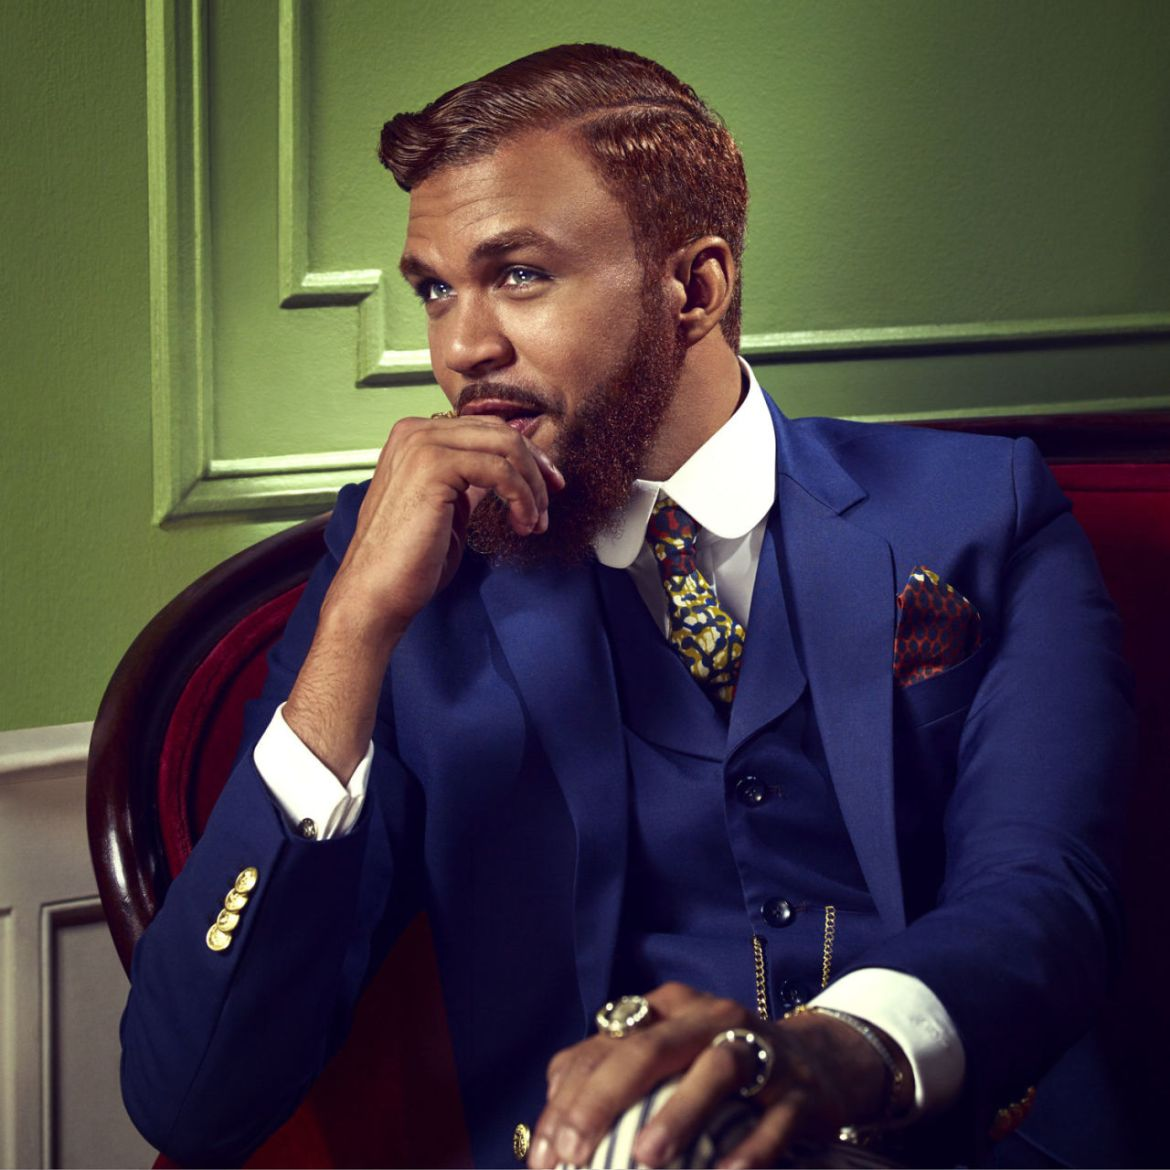 Don't Be That Tacky Guy, You Can Be Sophisticated. Here's How.